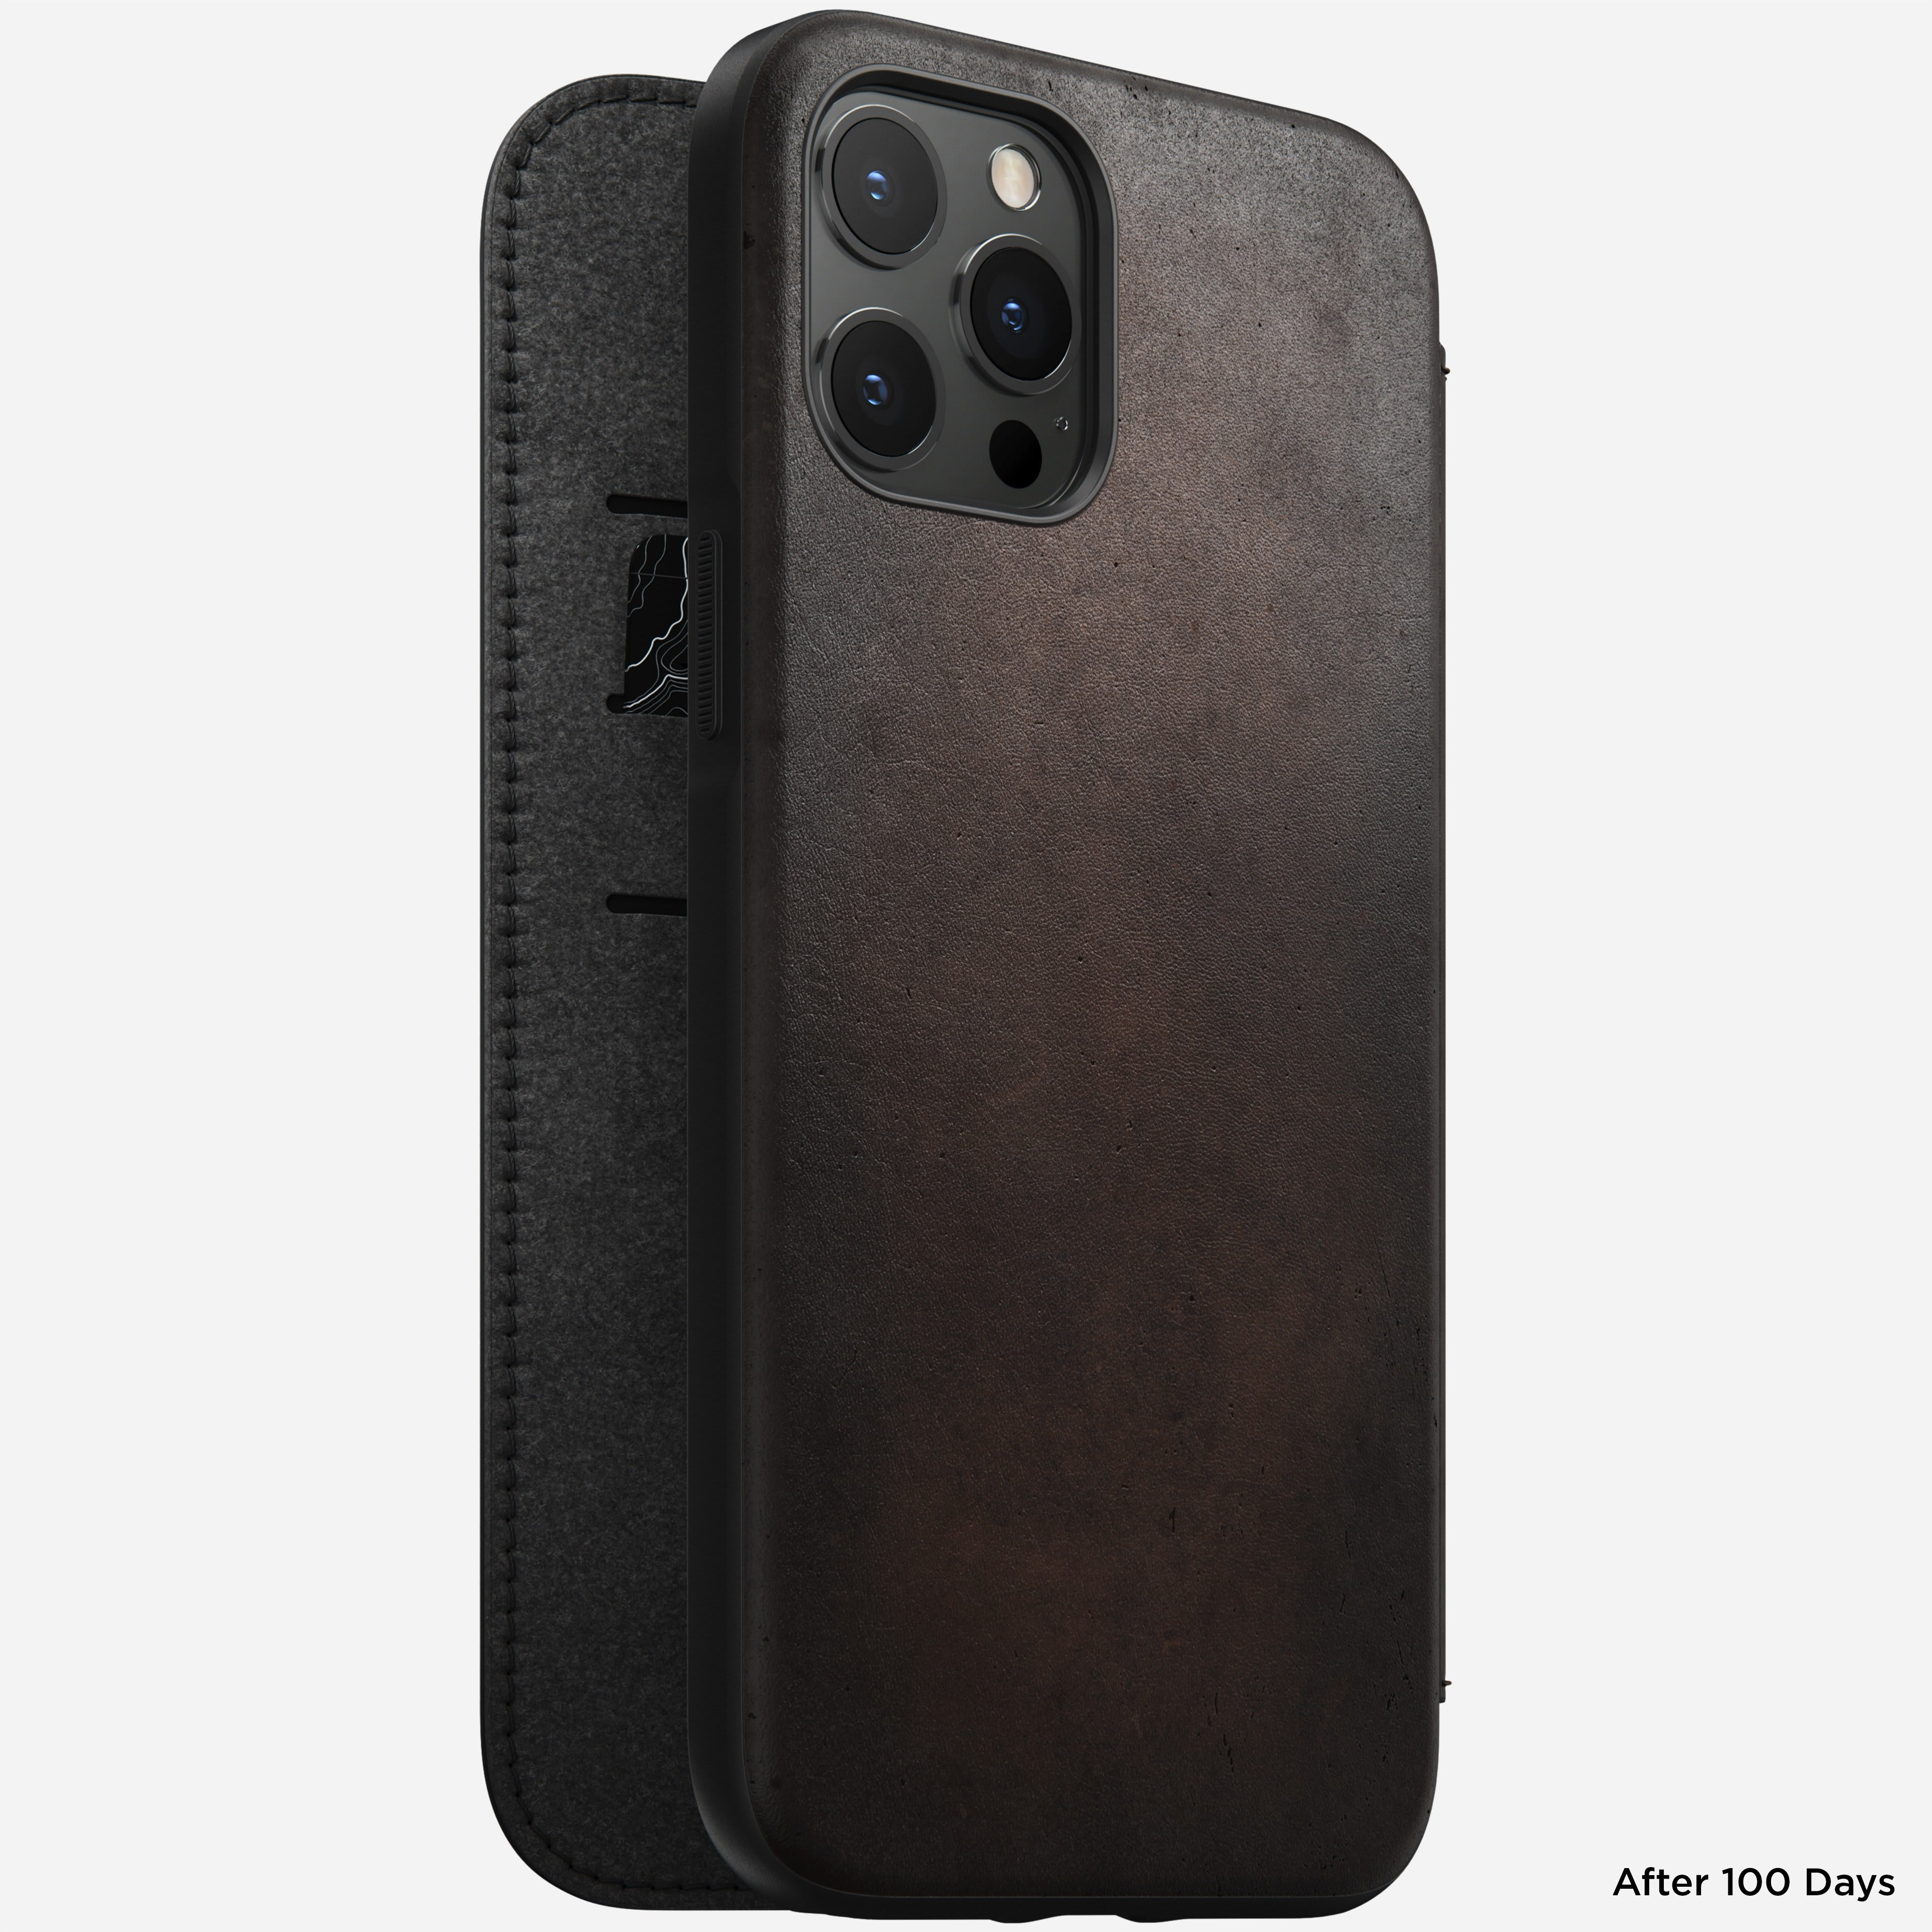 Rugged folio horween leather rustic brown iphone 12 pro max